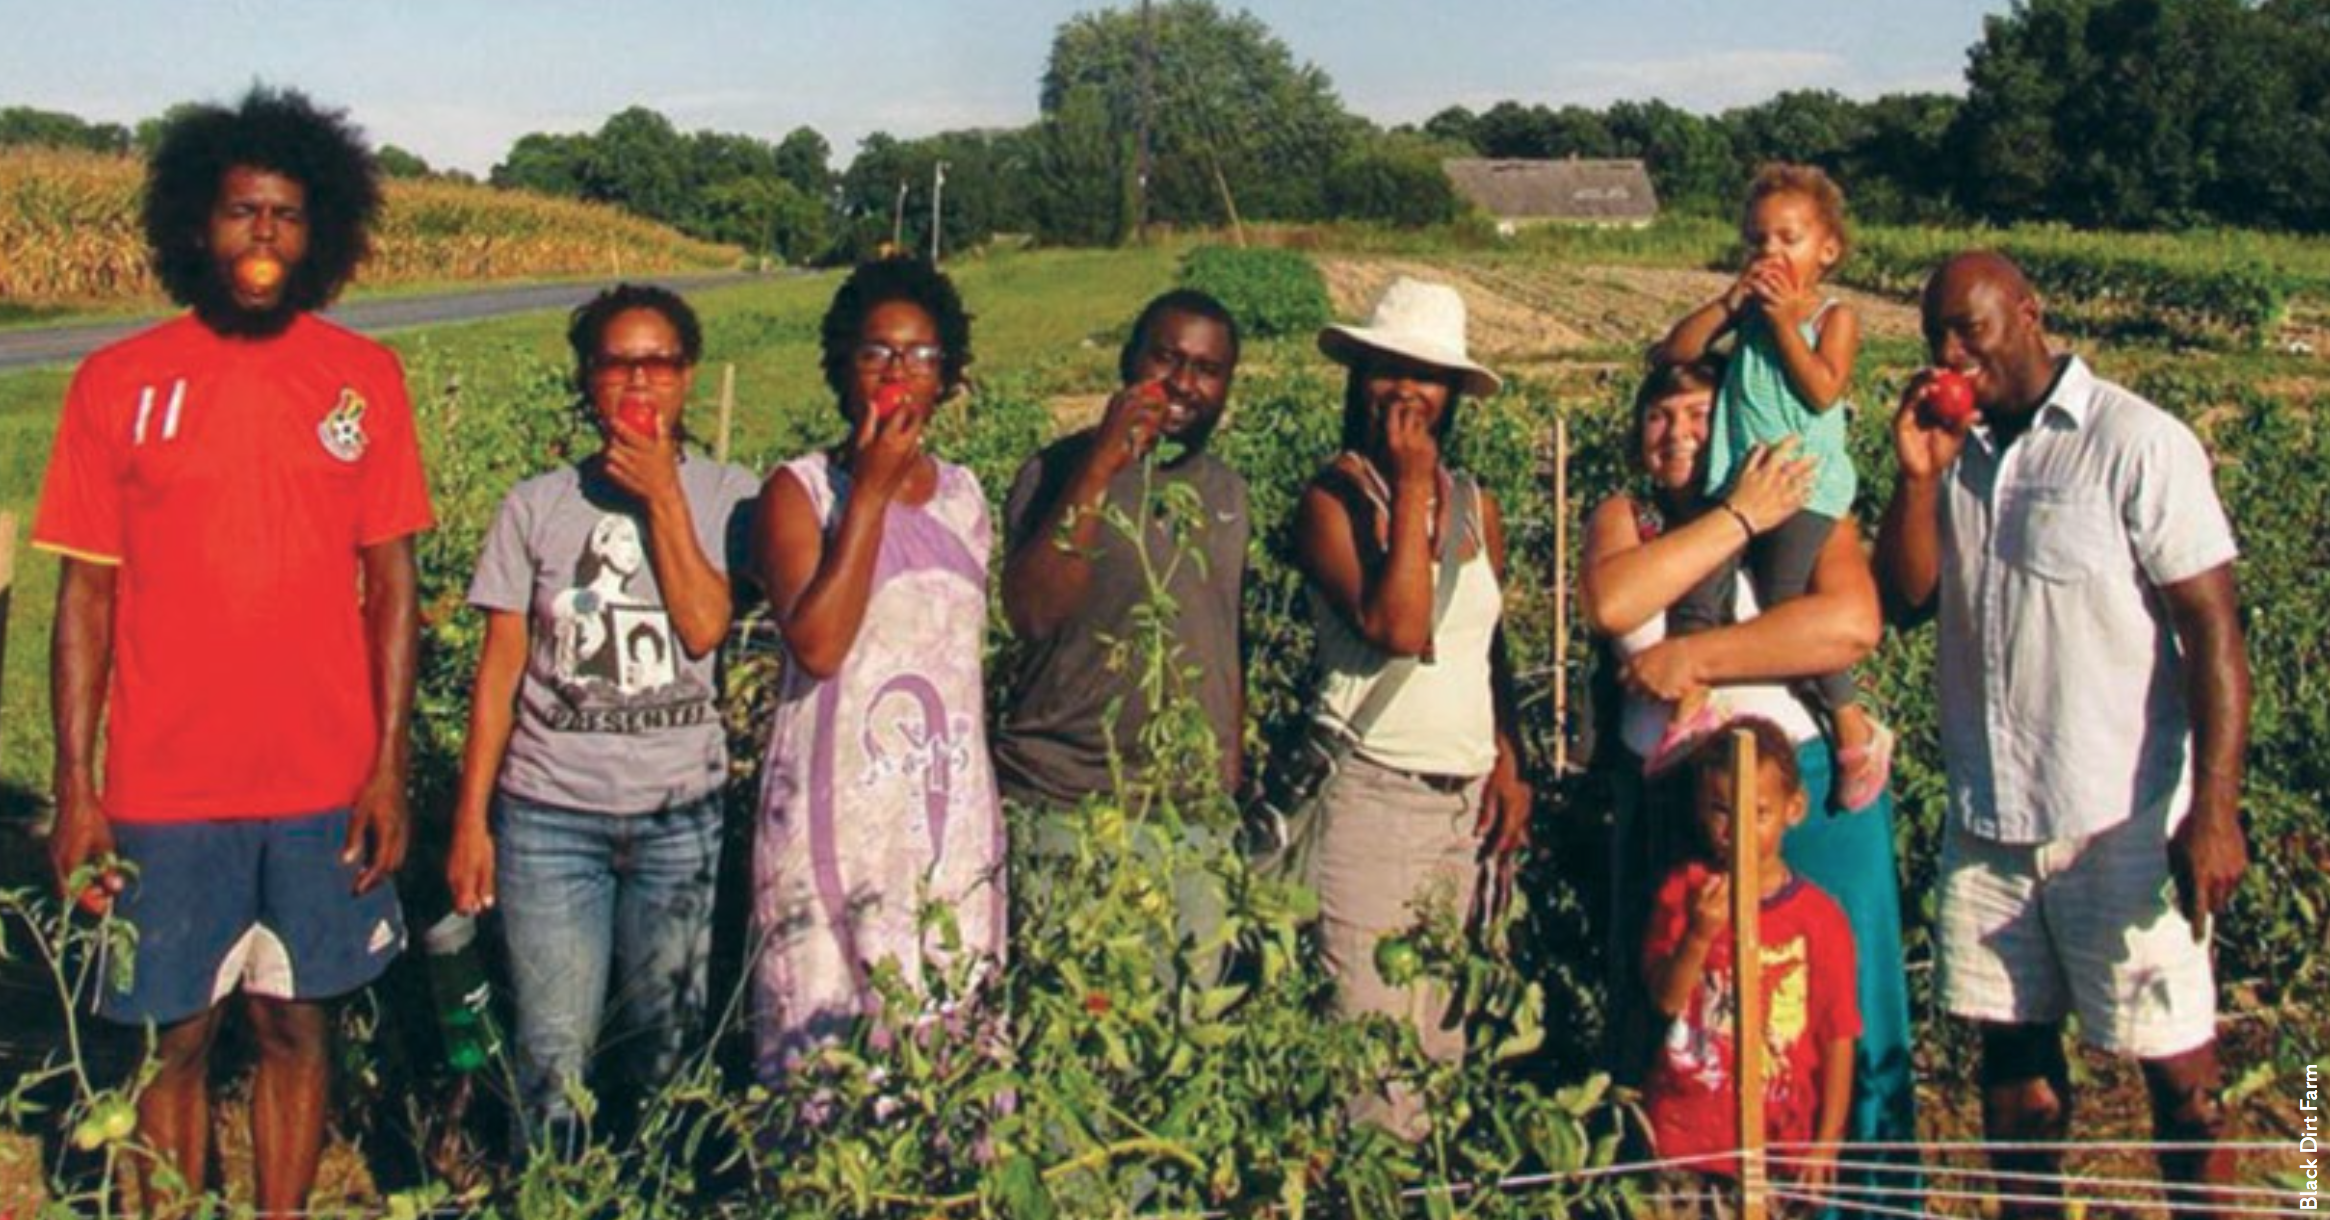 Black Farmers (Credit: The Common Market)